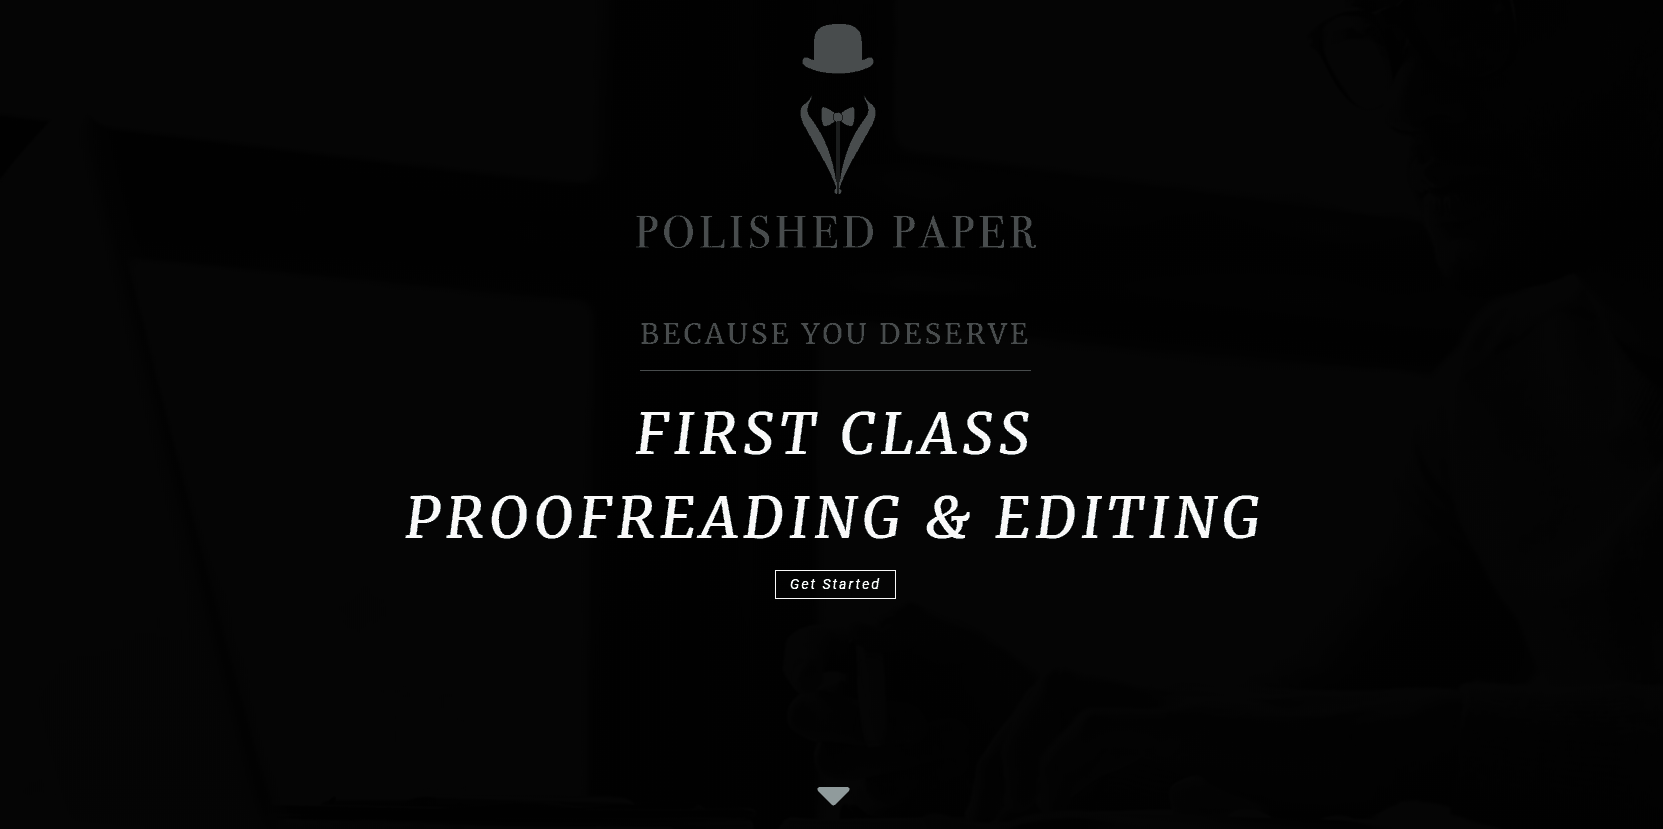 Polish Paper Screenshot for Online Proofreading Jobs